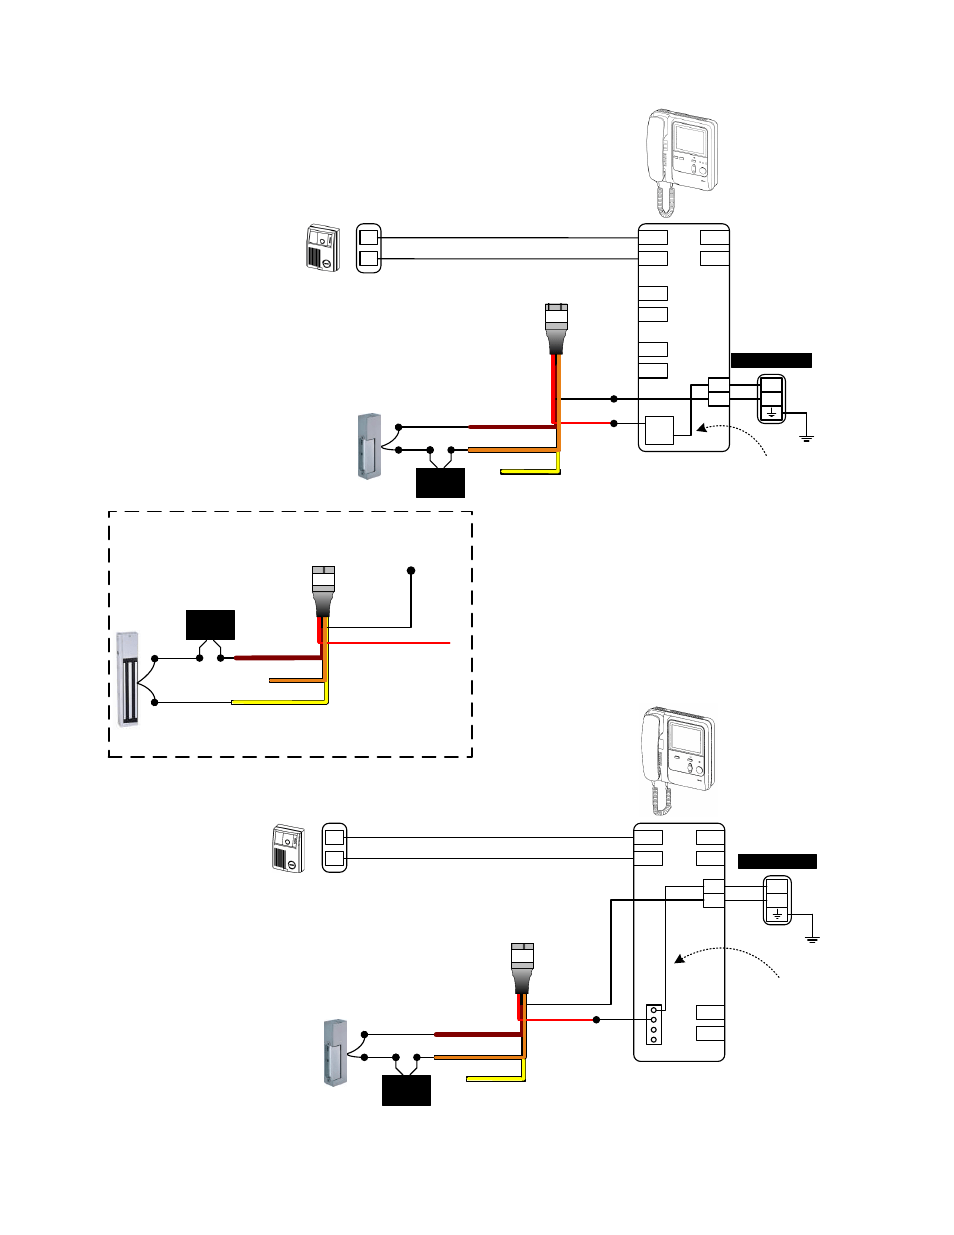 aiphone door release relay module ry 24l page2?resize\=665%2C861 aiphone lef 3 wiring diagram on aiphone download wirning diagrams pacific electronics af1000 wiring diagram at eliteediting.co